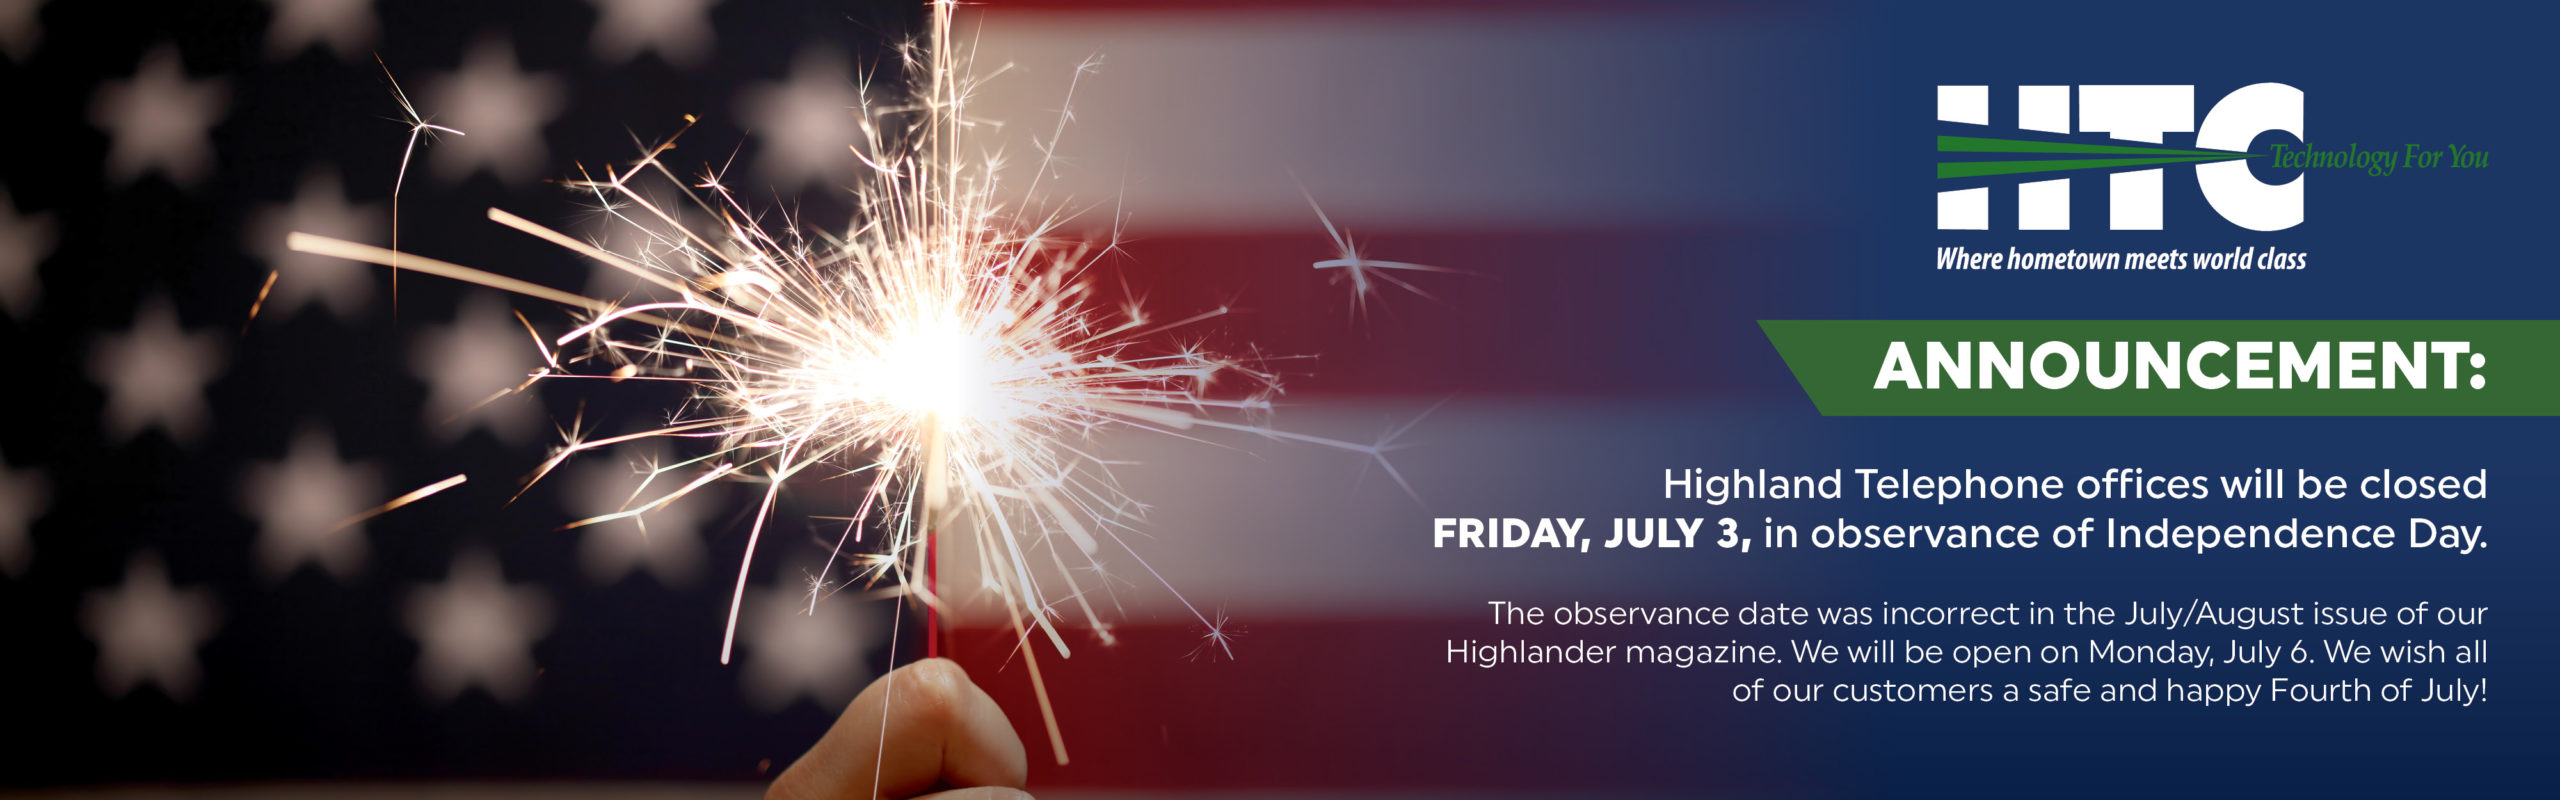 HTC. Technology for You. Where Hometown meets world class. Annoucement: Highland Telephone offices will be closed Friday, July 3, in observance of Independence Day. The observance date was incorrect in the July/August issue of our Highlander magazine. We will be open on Monday, July 6. We wish all of our customers a safe and happy Fourth of July!